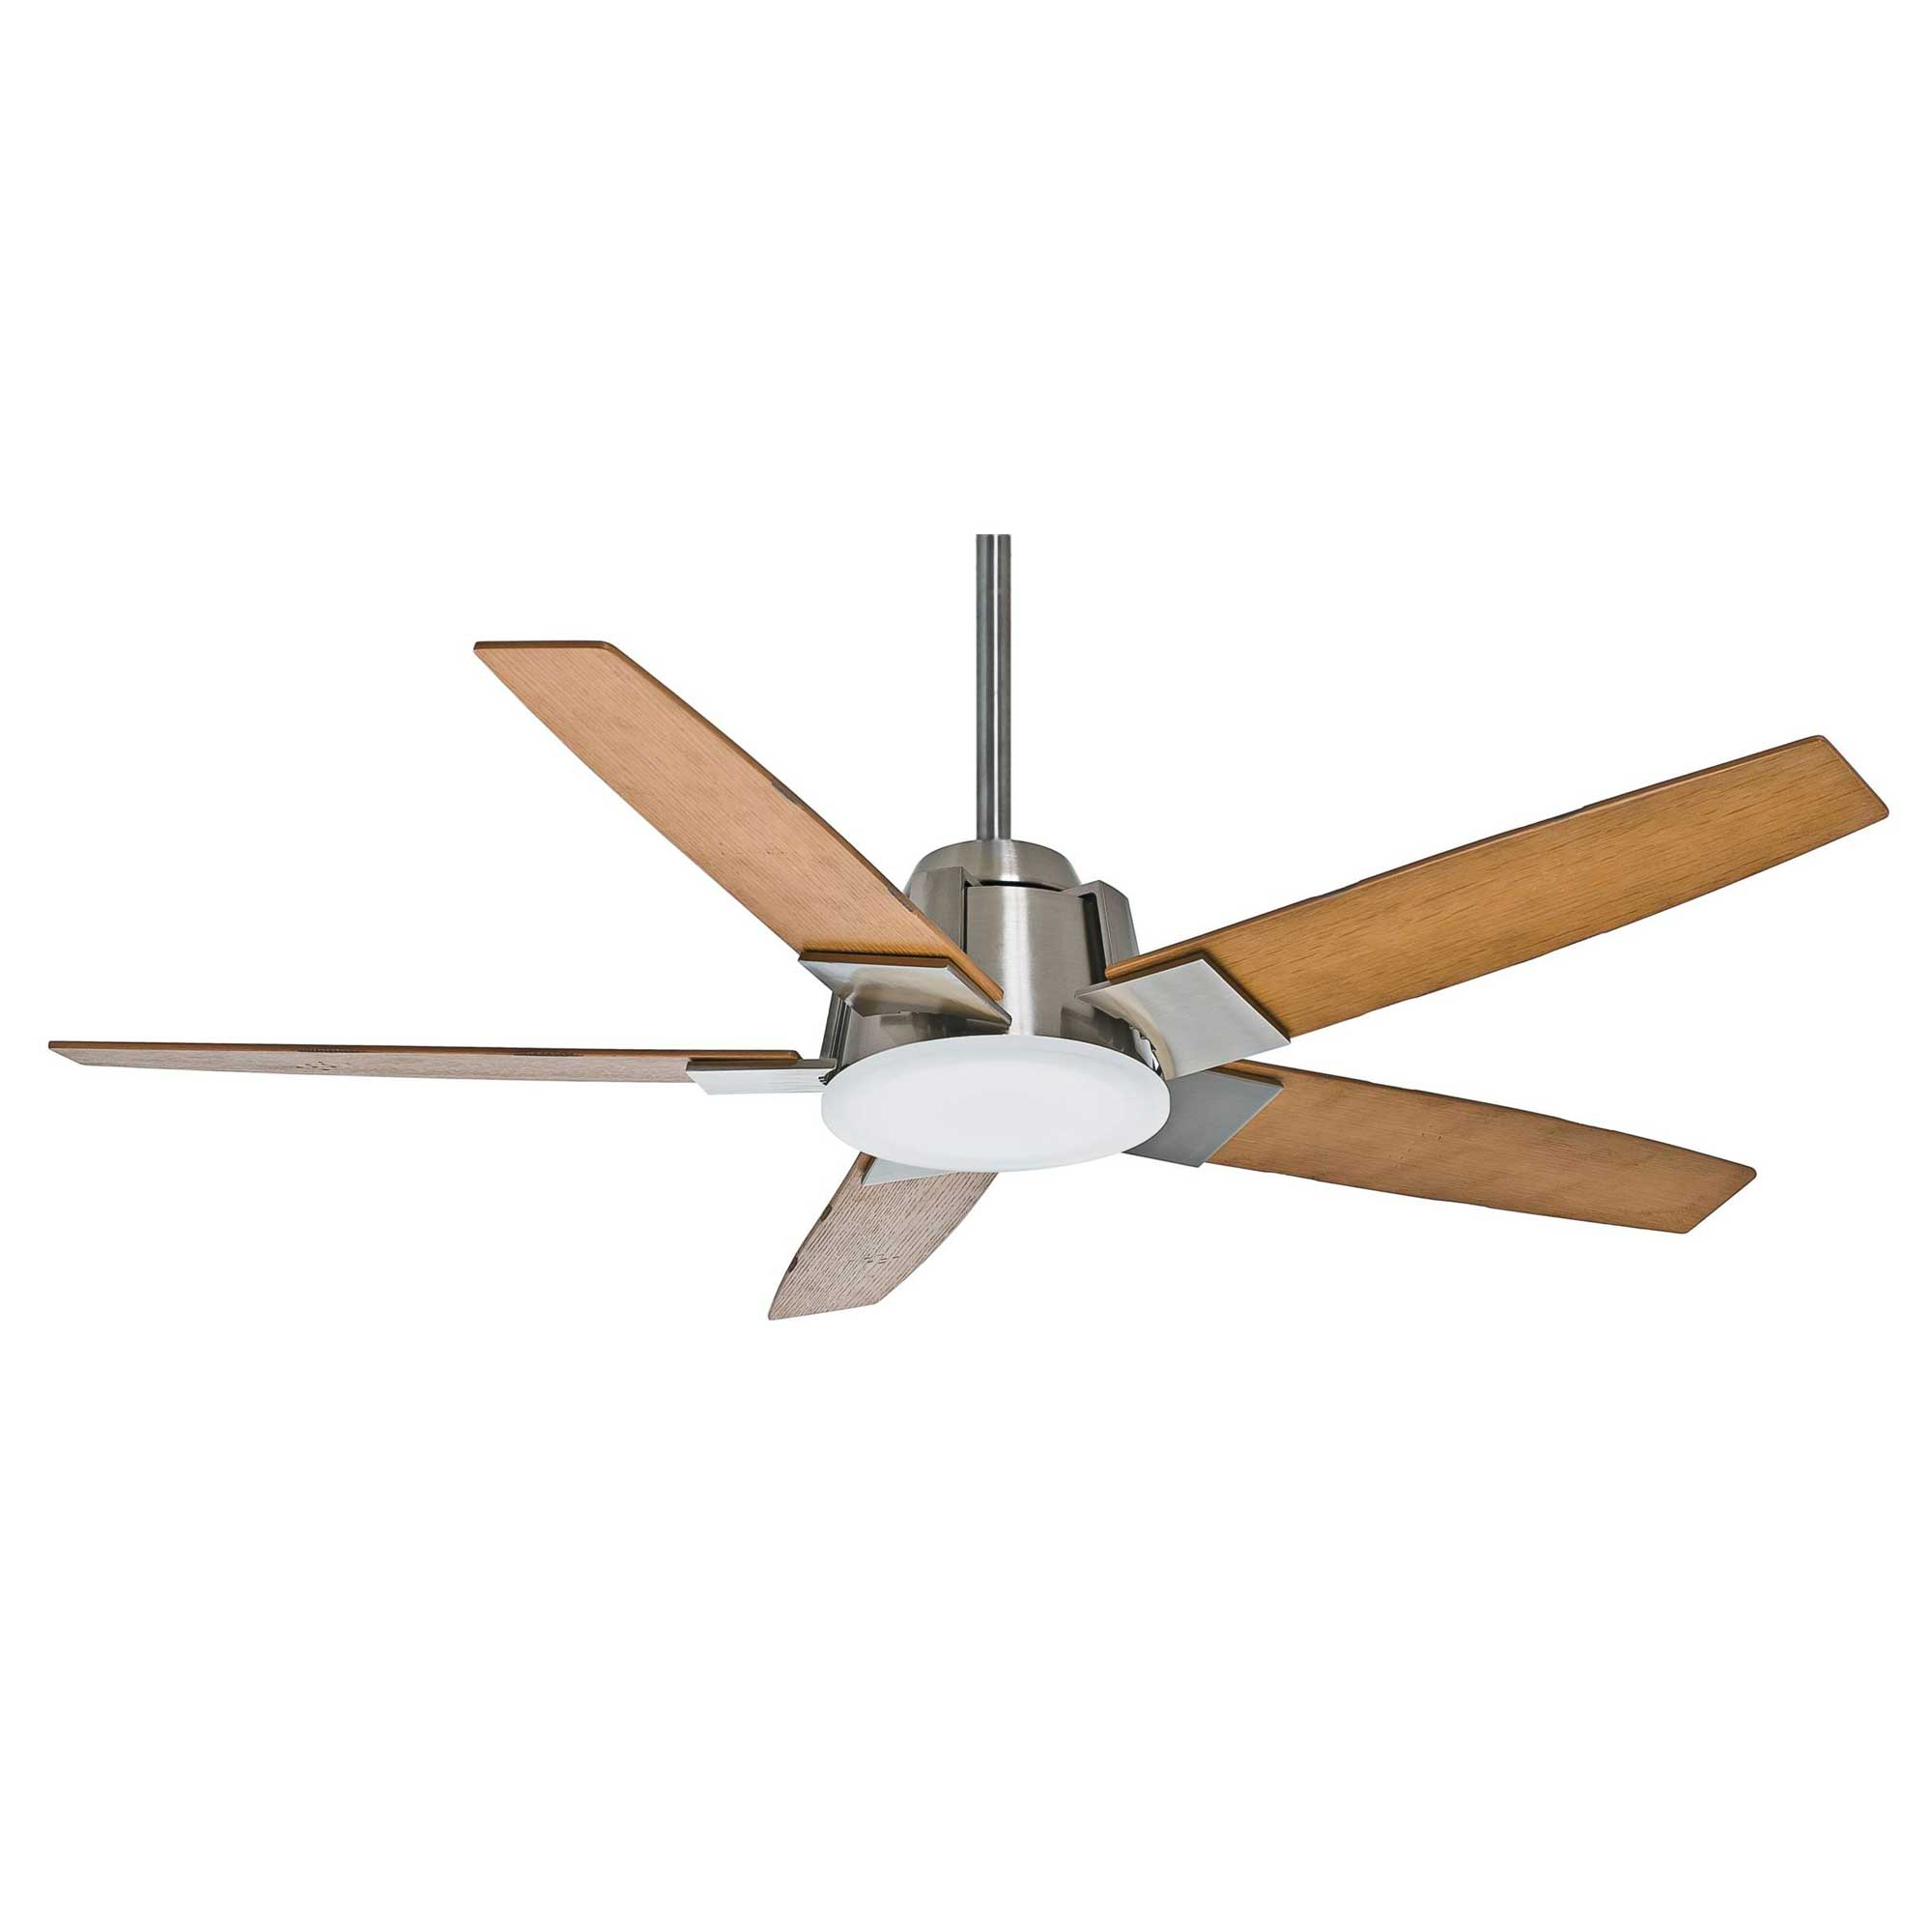 5 Blade LED Ceiling Fan by Casablanca Fan